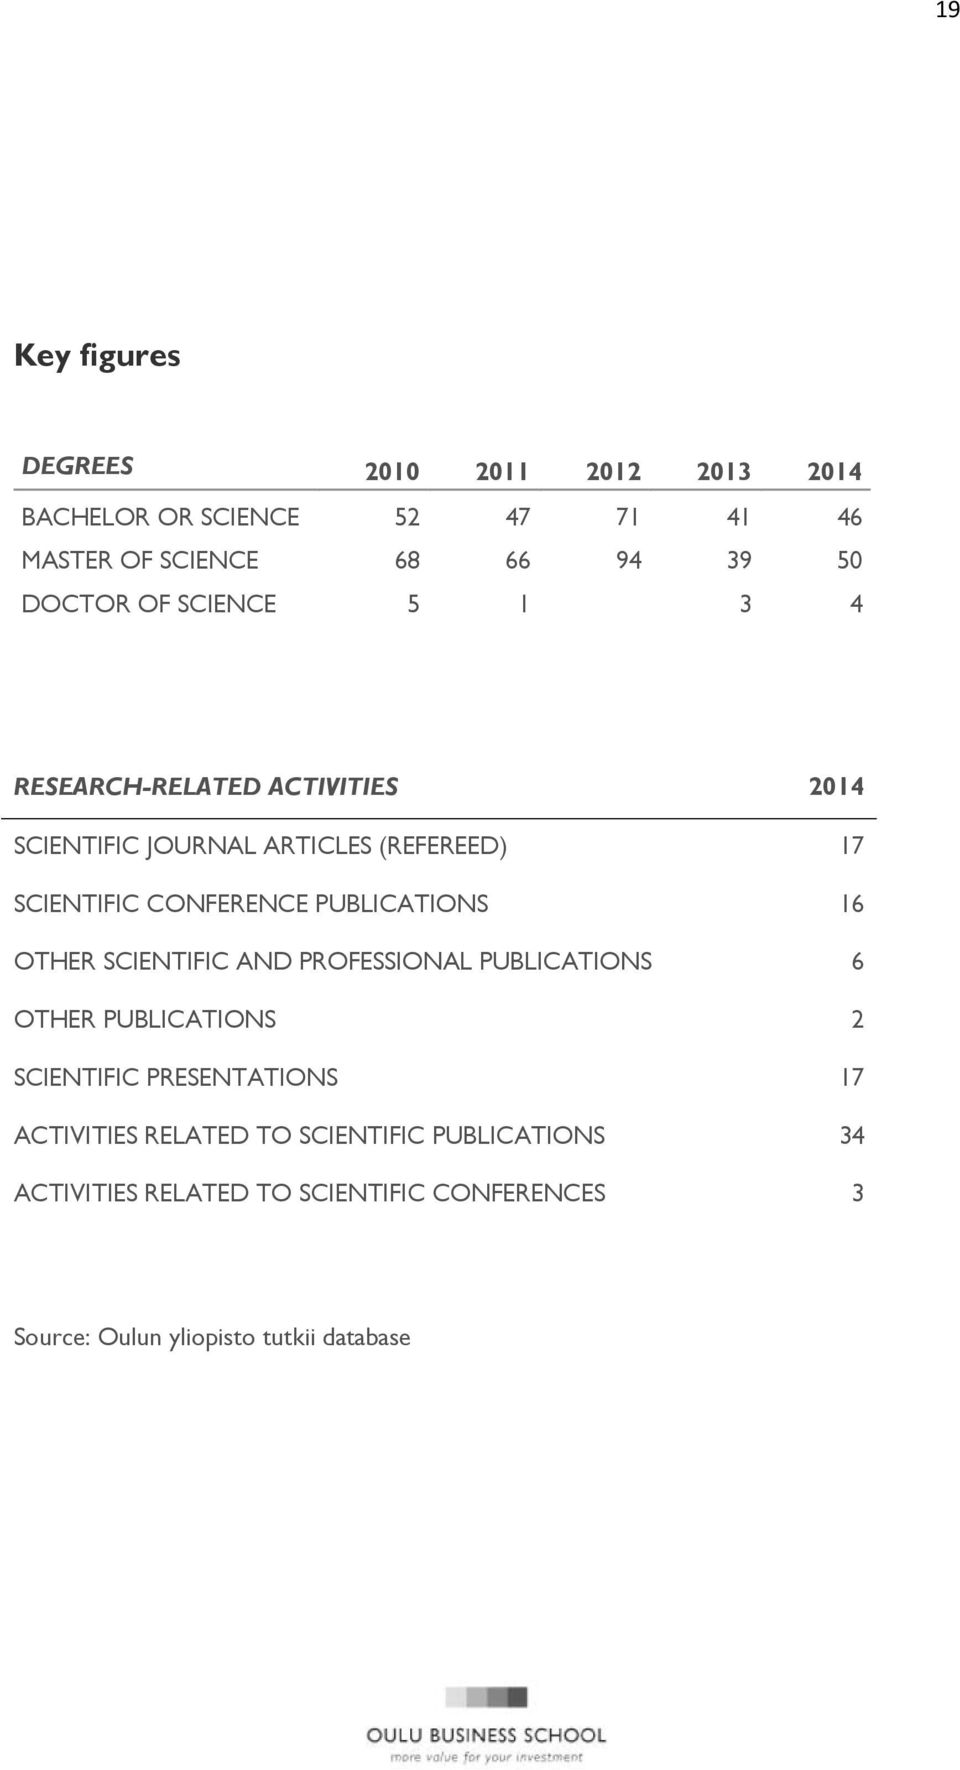 CONFERENCE PUBLICATIONS 16 OTHER SCIENTIFIC AND PROFESSIONAL PUBLICATIONS 6 OTHER PUBLICATIONS 2 SCIENTIFIC PRESENTATIONS